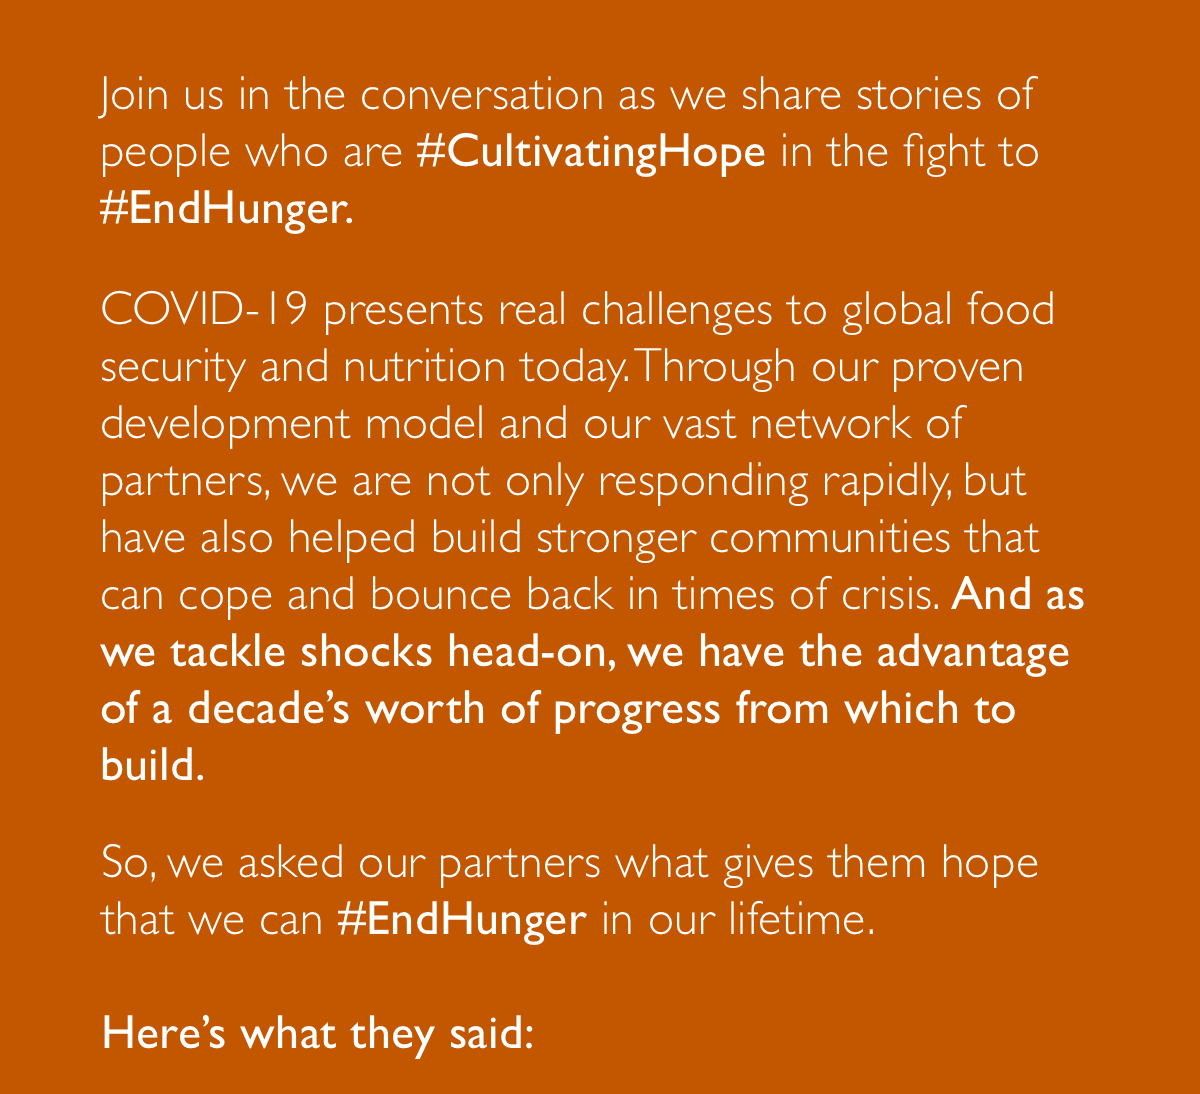 Join us in the conversation as we share stories of people who are #CultivatingHope in the fight to #EndHunger.